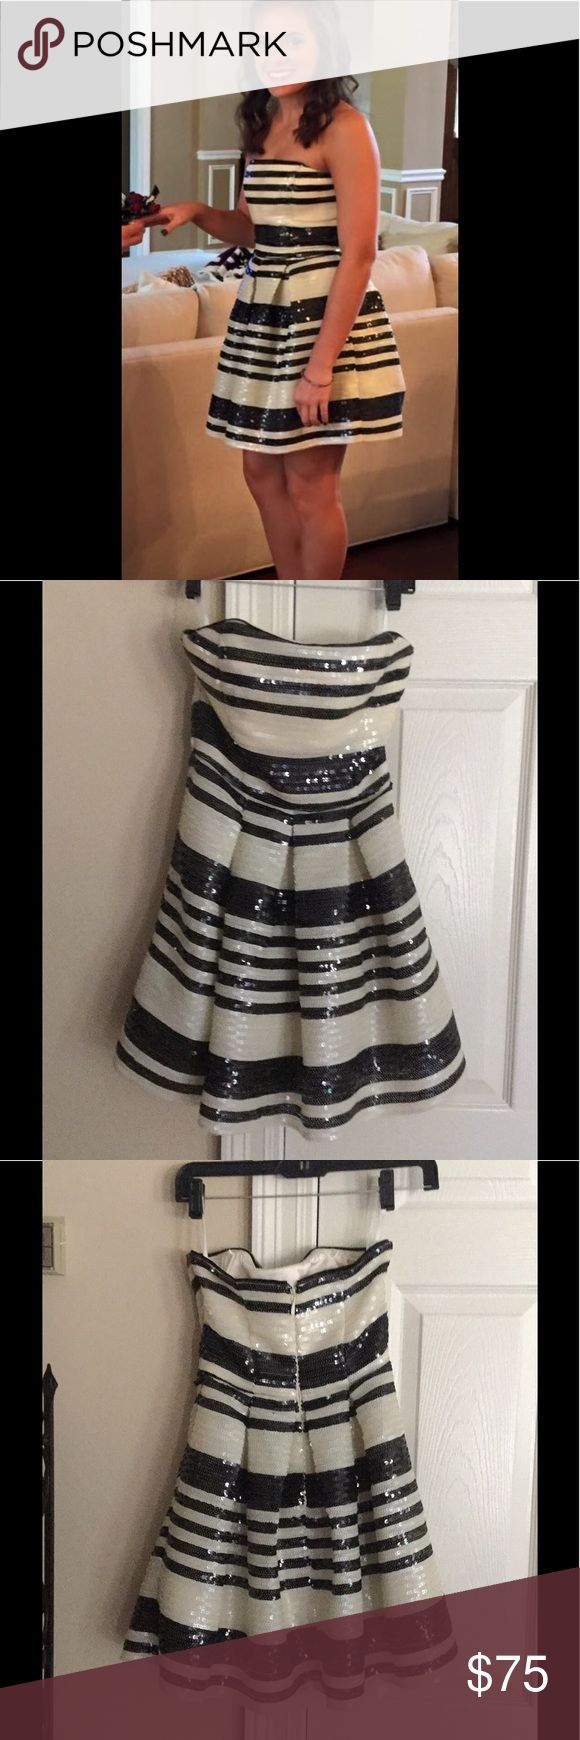 Homecoming/Semi formal dress Worn one time!  Excellent condition! Gorgeous black and off white strapless sequenced dress. Wear to a Homecoming, wedding, or semi formal/formal event or cocktail! Dresses Prom